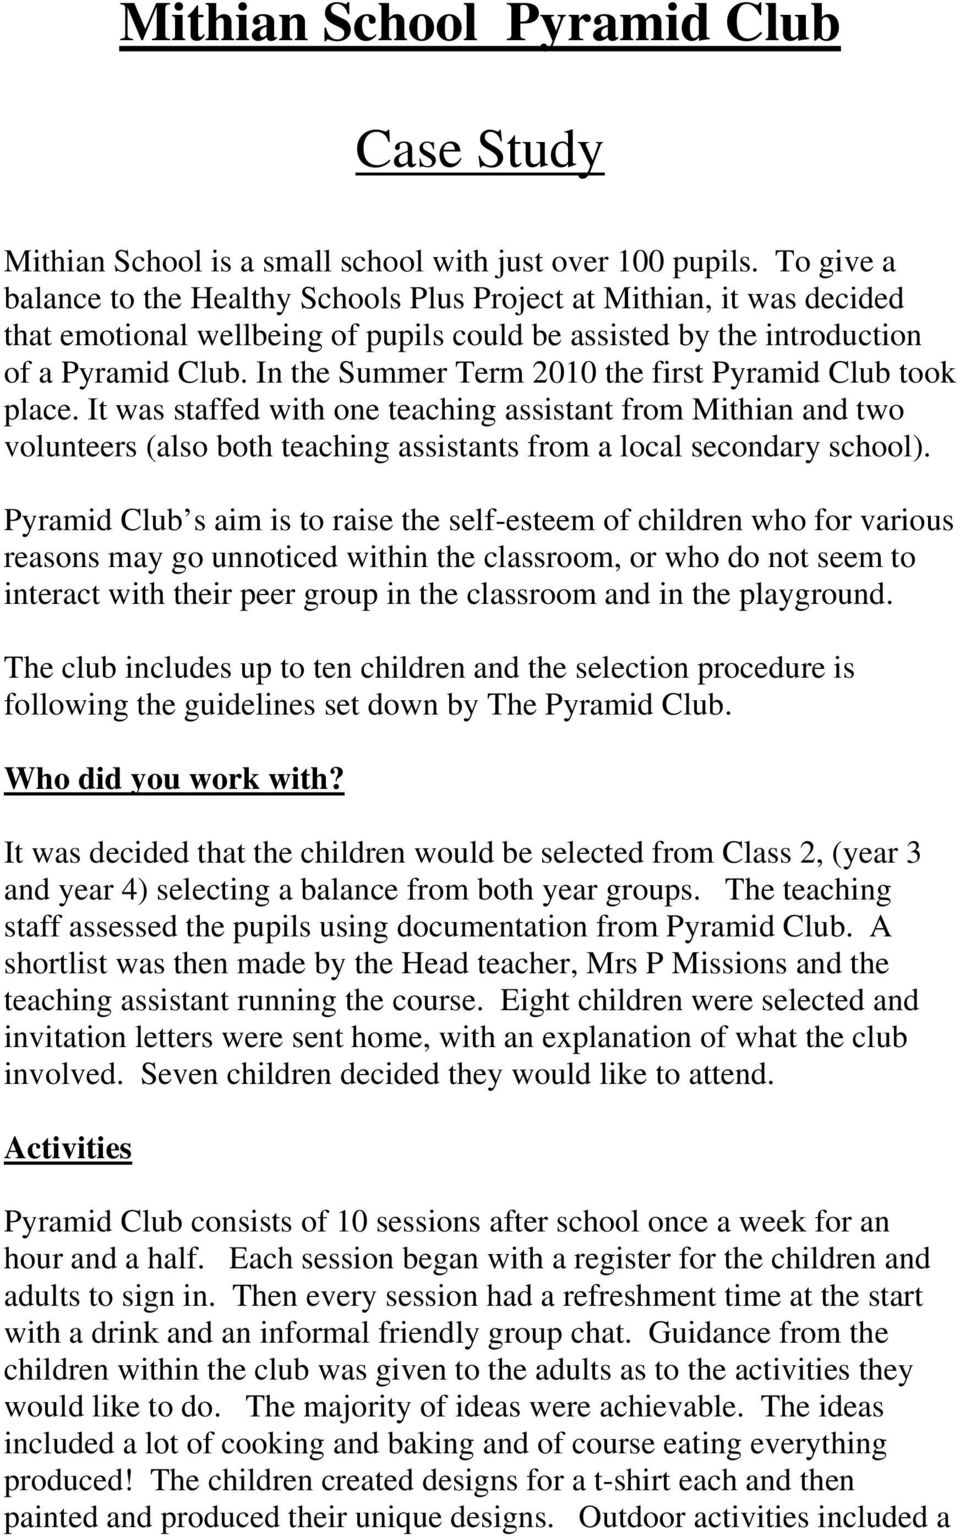 In the Summer Term 2010 the first Pyramid Club took place. It was staffed with one teaching assistant from Mithian and two volunteers (also both teaching assistants from a local secondary school).